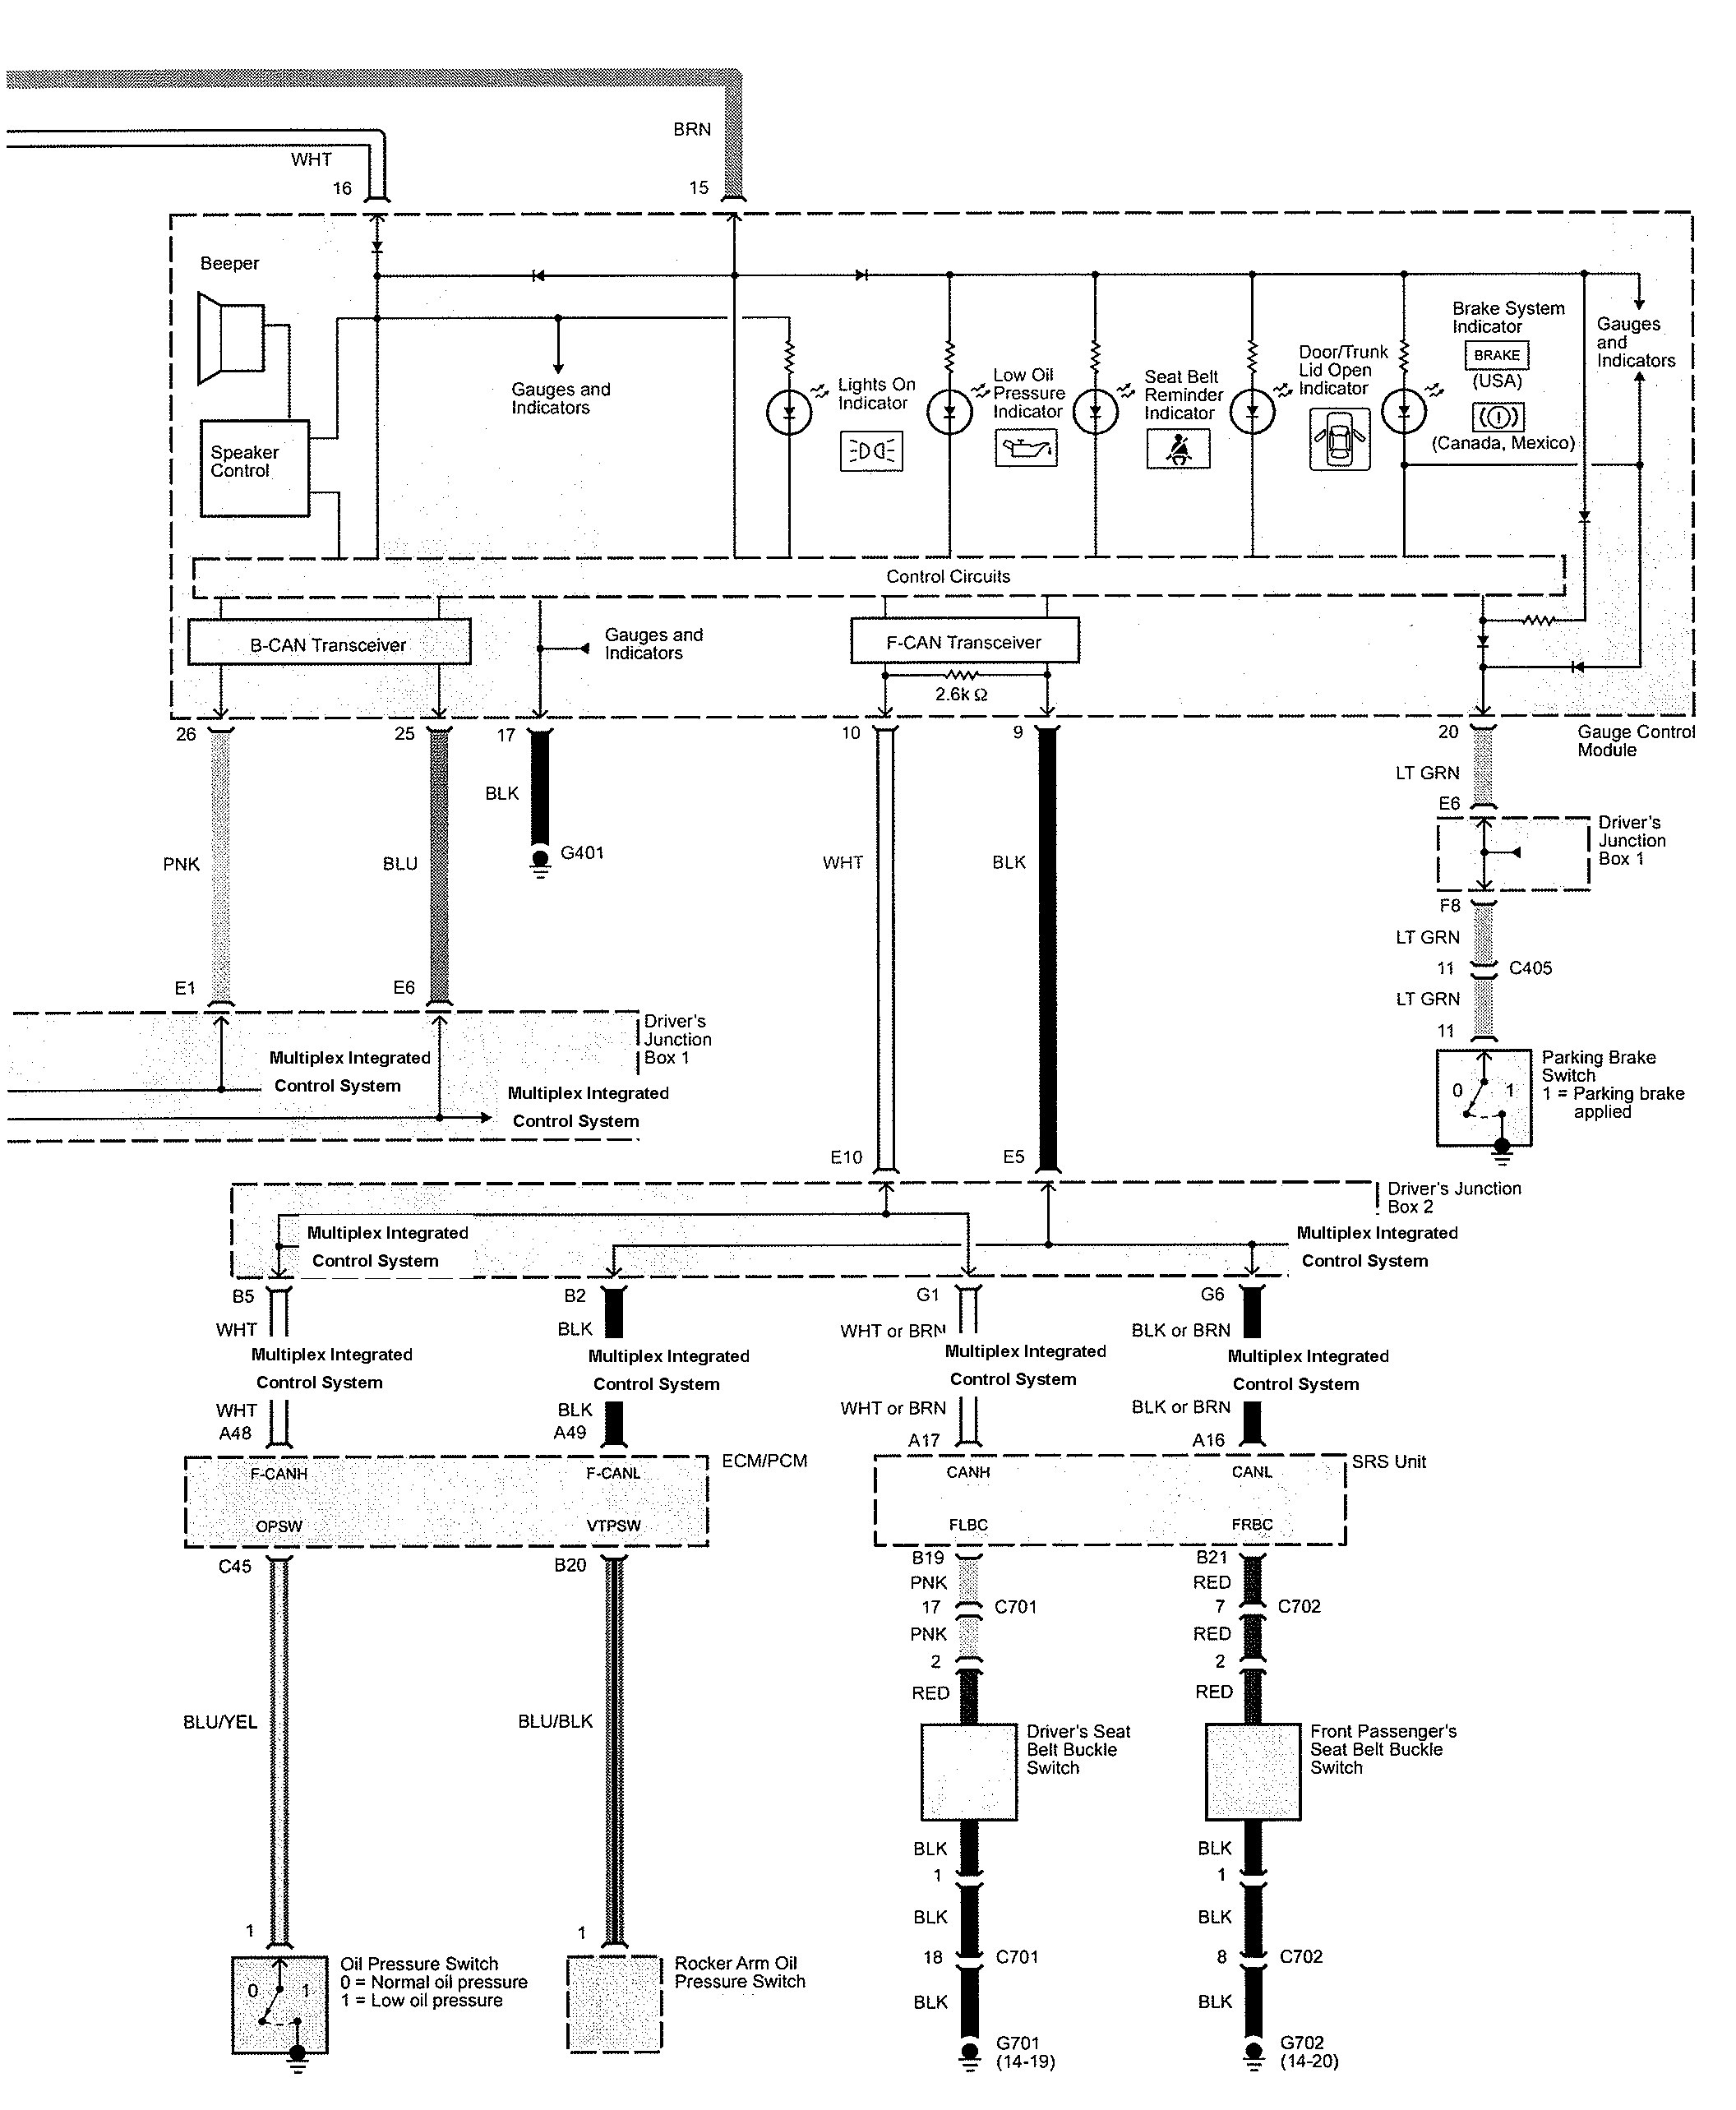 Wiring Diagram 2001 Lincoln Will Be A Thing 2007 Mkx Engine Mkz Headlight 1999 Navigator